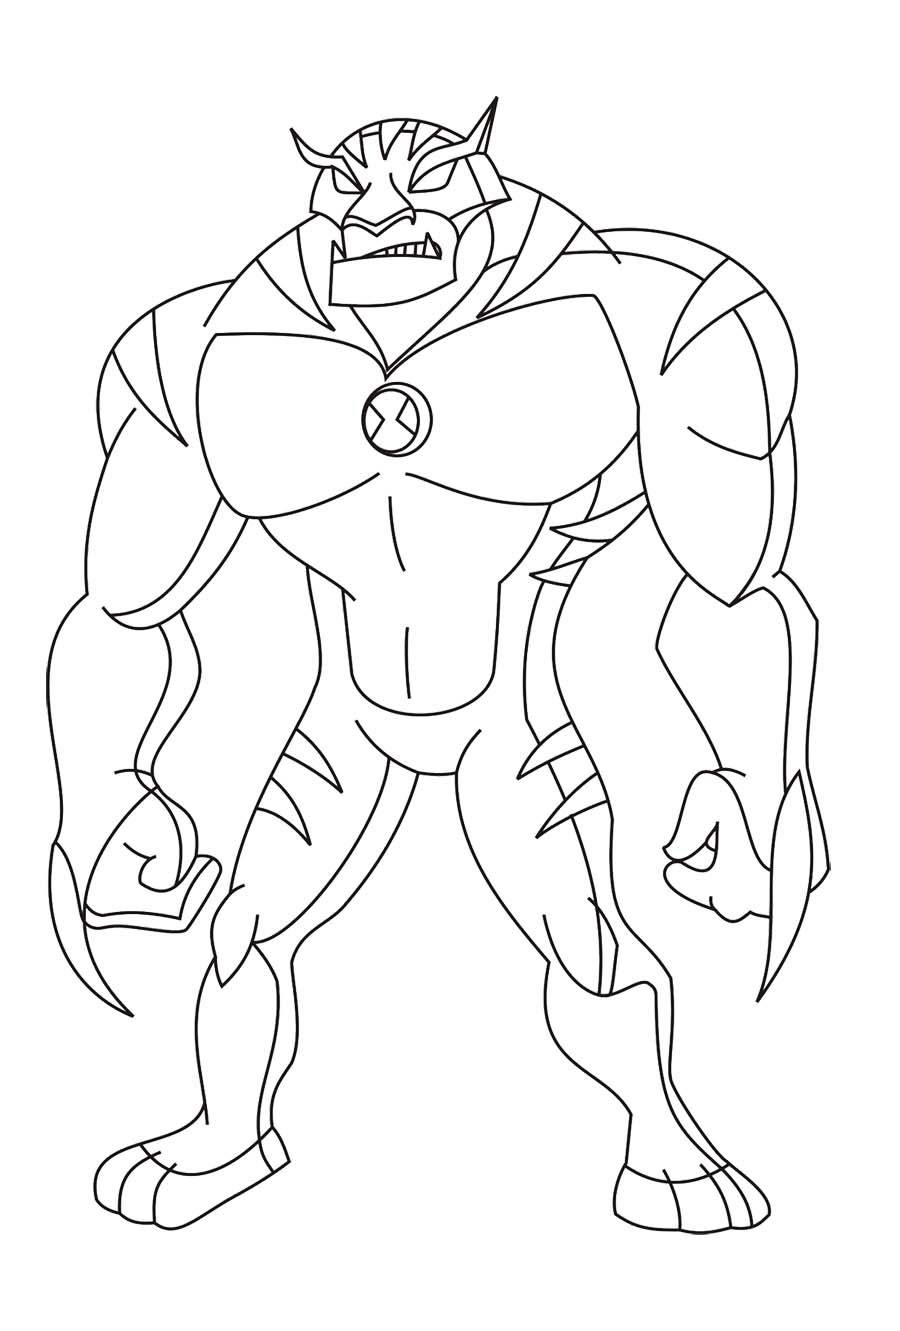 Coloring Page For Kids Coloring Books Coloring Pages Cartoon Coloring Pages